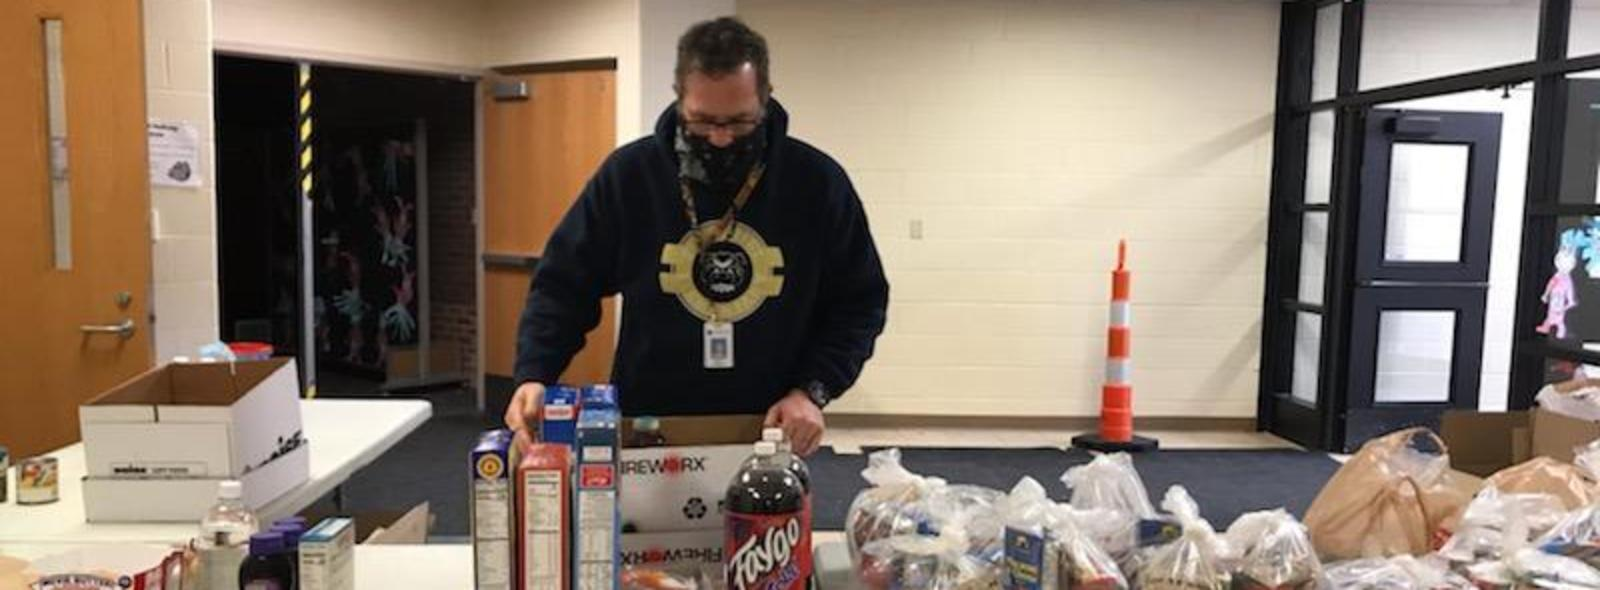 extra food donations go to families at the meal distribution